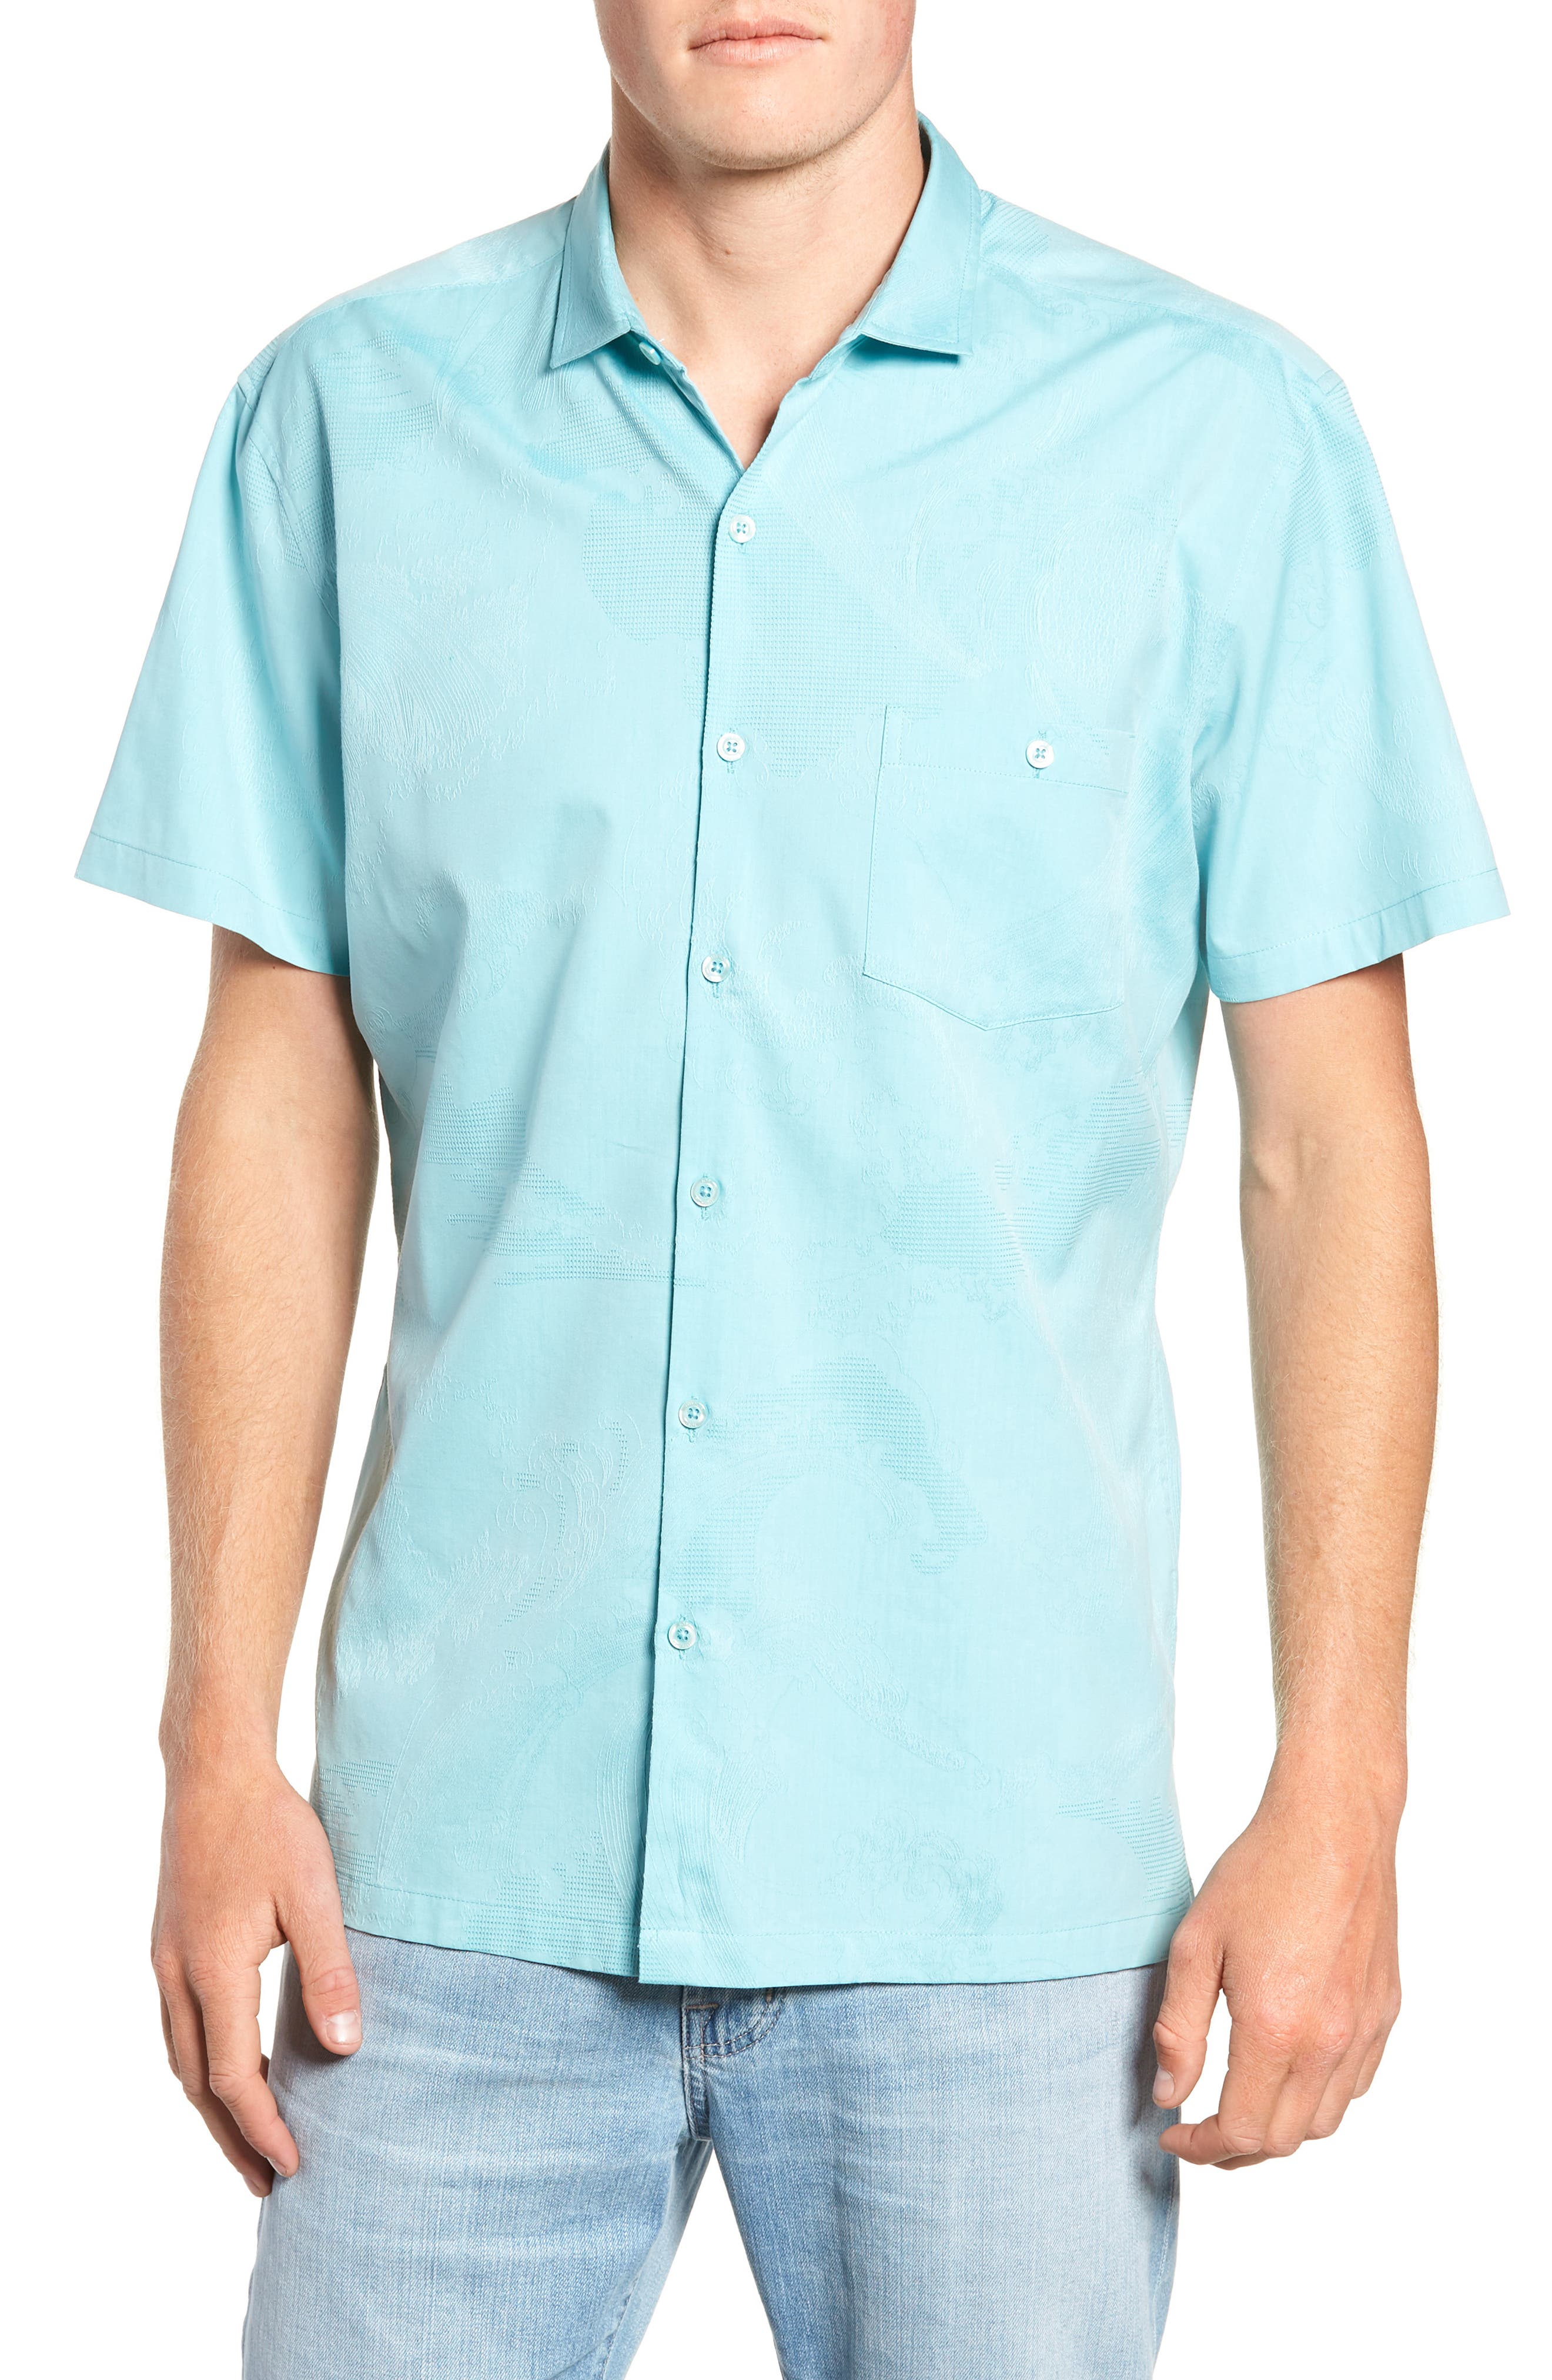 Seas the Day Trim Fit Camp Shirt,                         Main,                         color, Surf